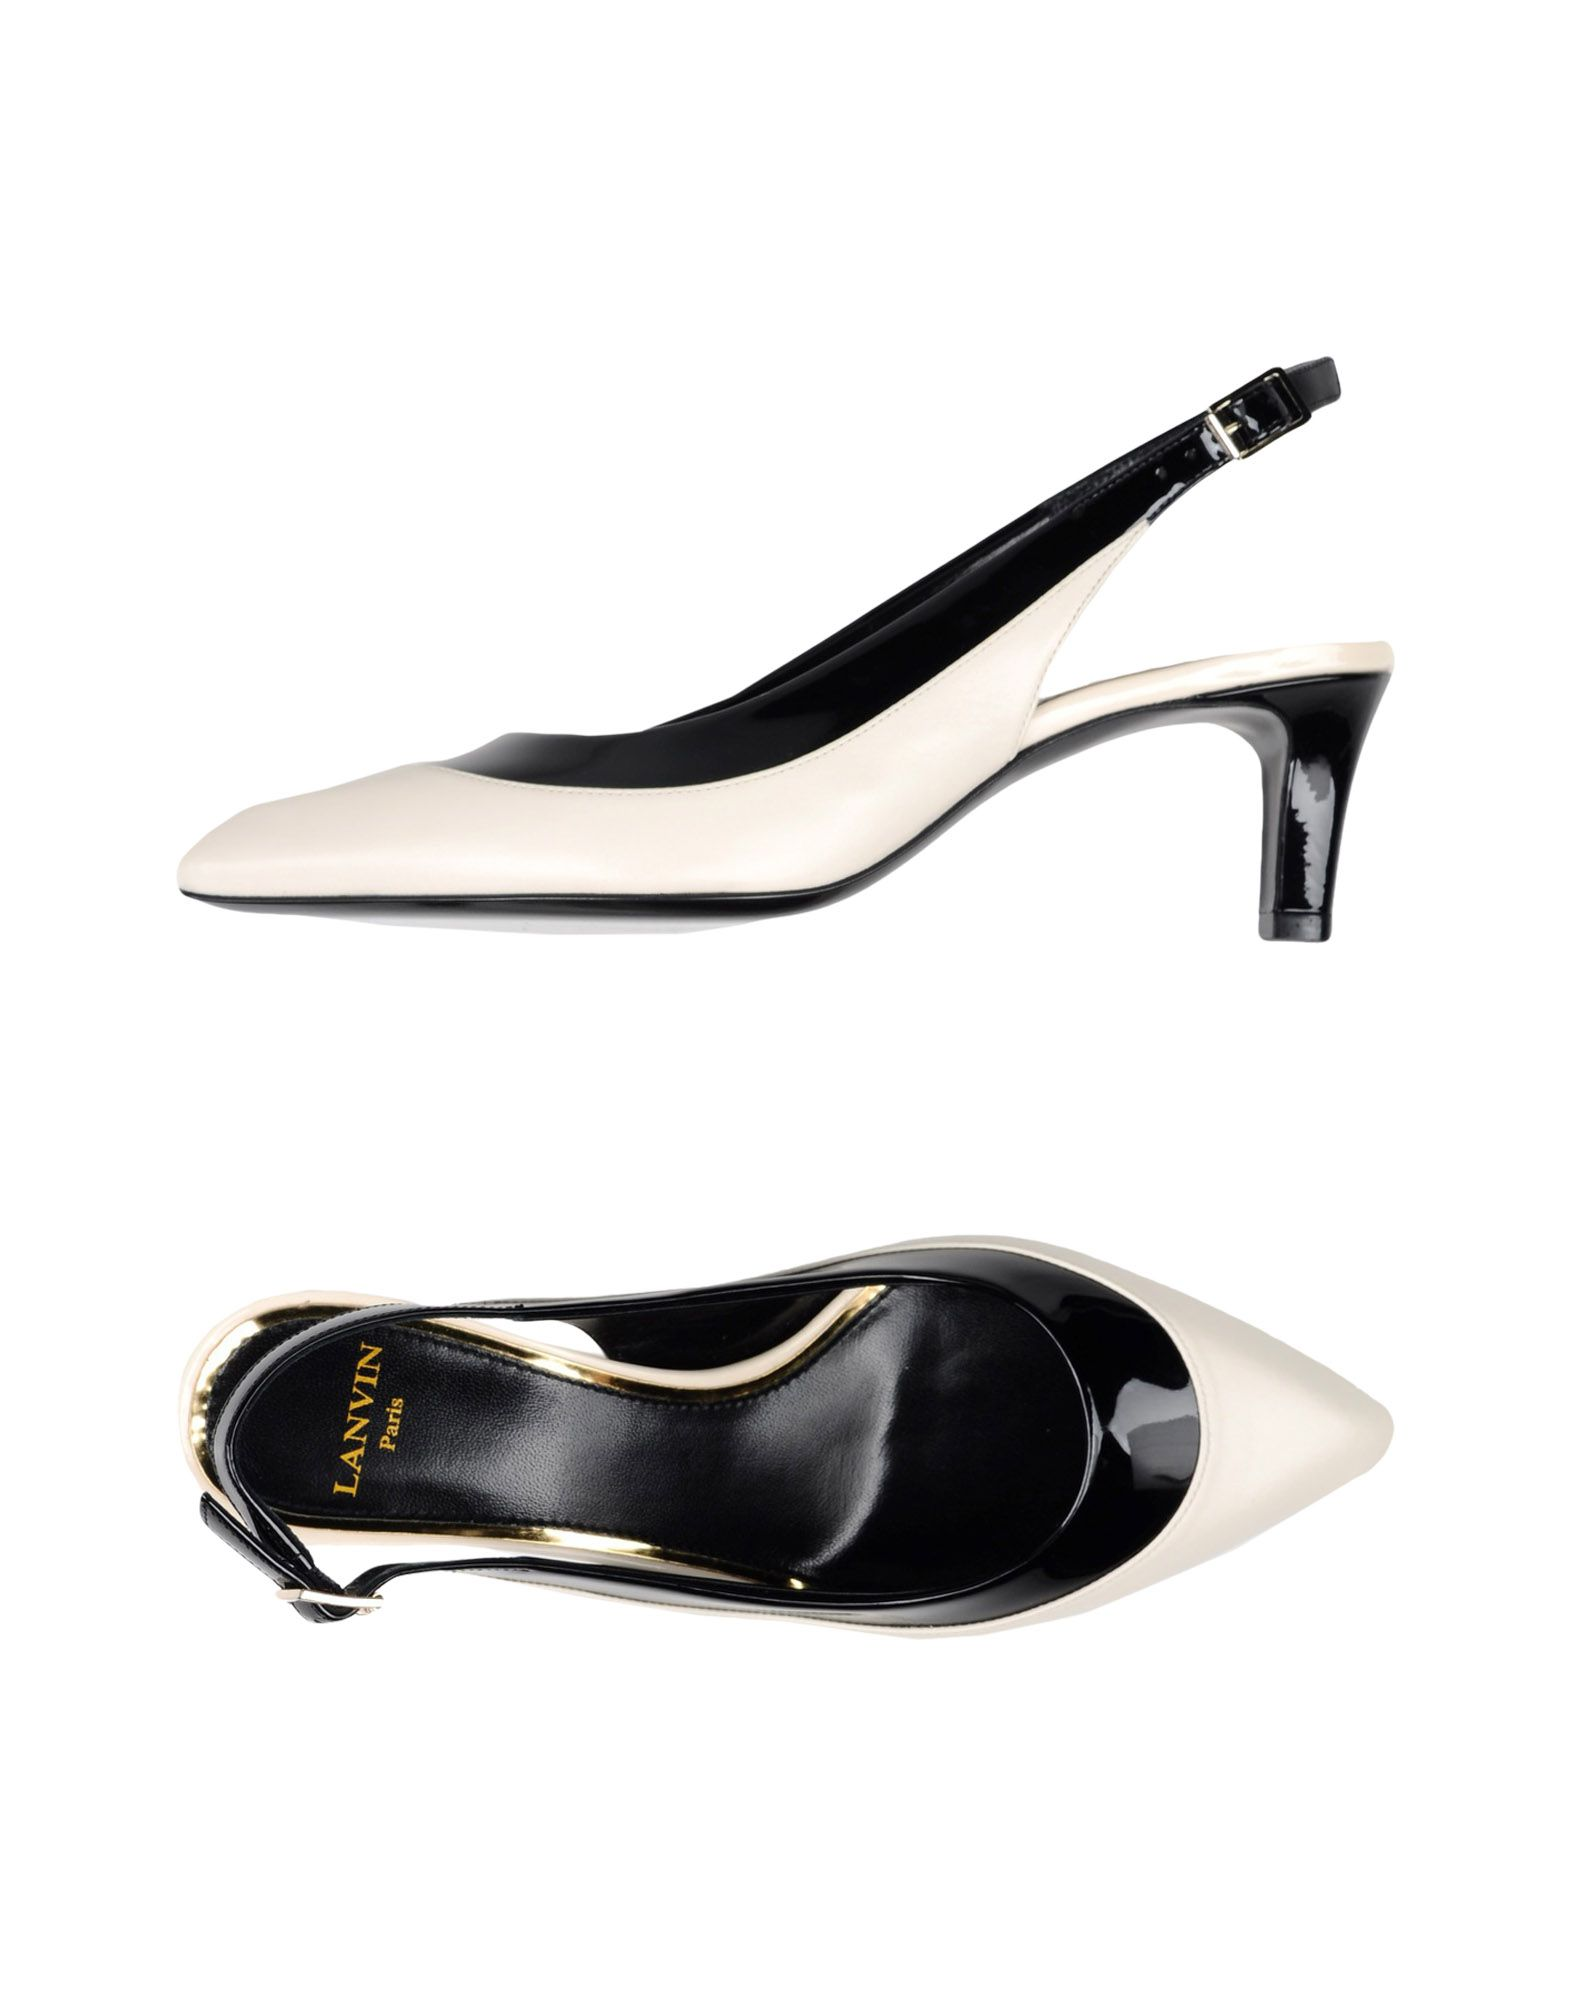 Lanvin Pump - Women Lanvin Pumps online 11359333VJ on  Australia - 11359333VJ online adb12b